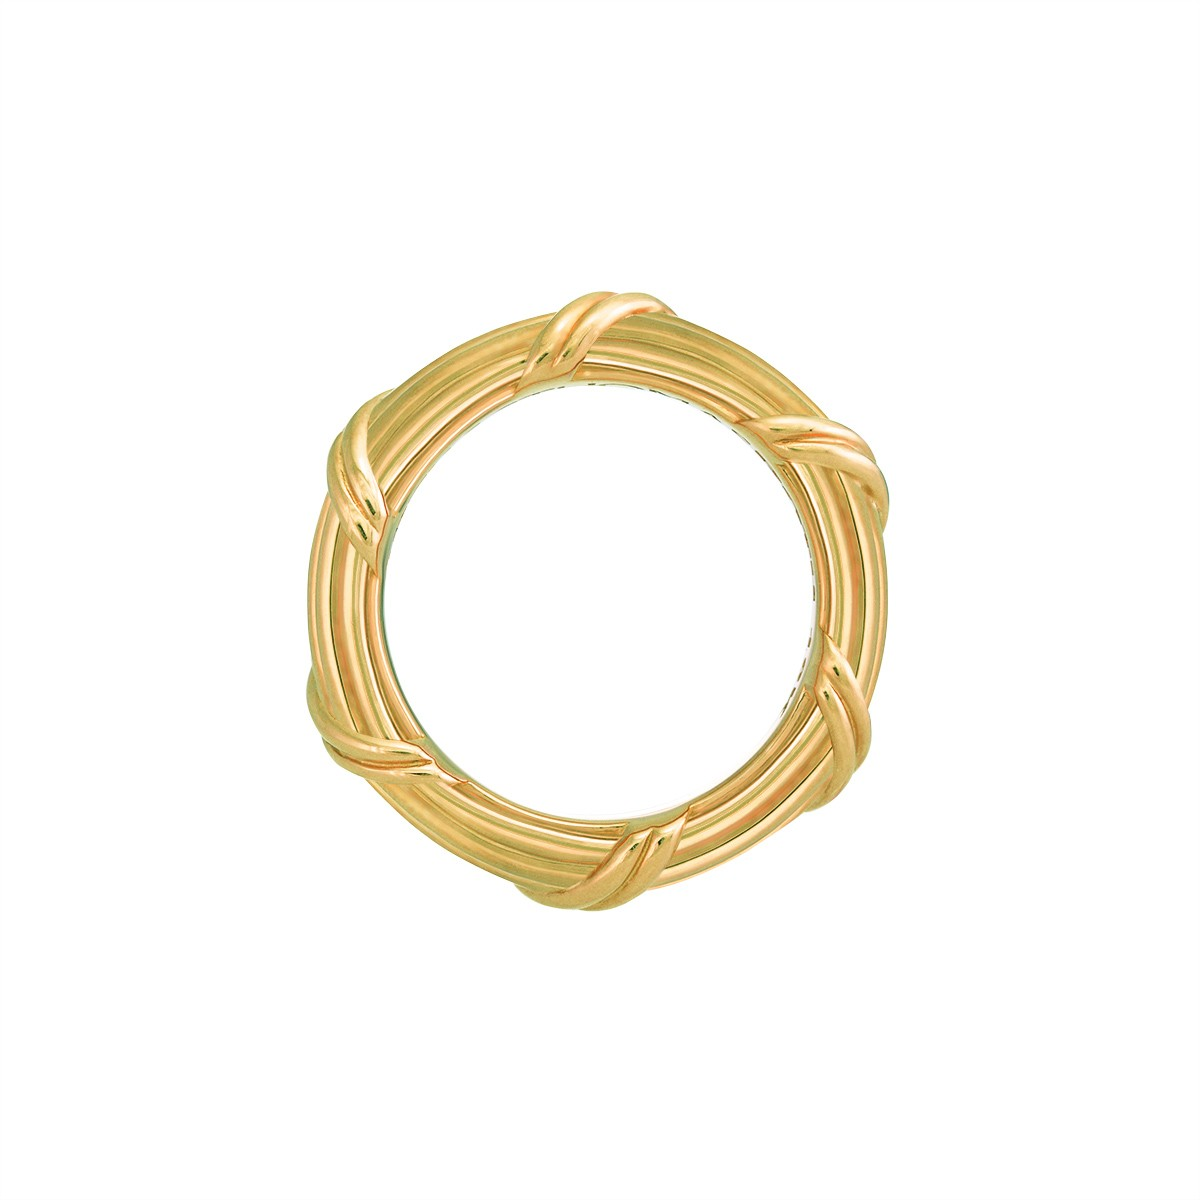 band round products gold hoardjewelry bands il fullxfull full ring